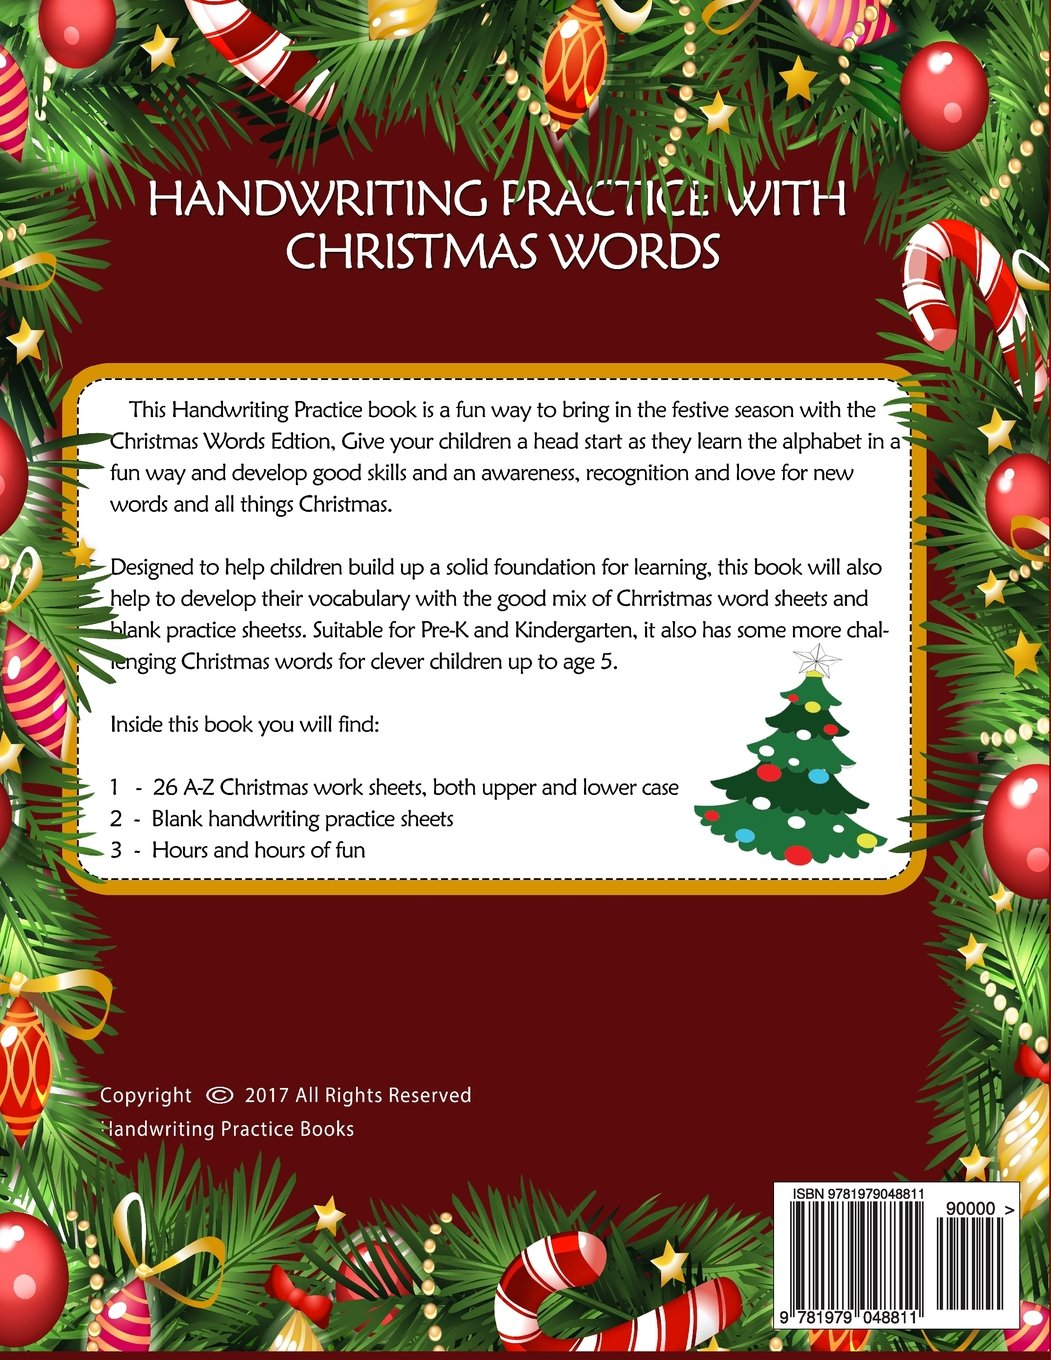 handwriting practice for kids christmas abc words handwriting practice paper workbook sheets with christmas coloring book for kids pre k